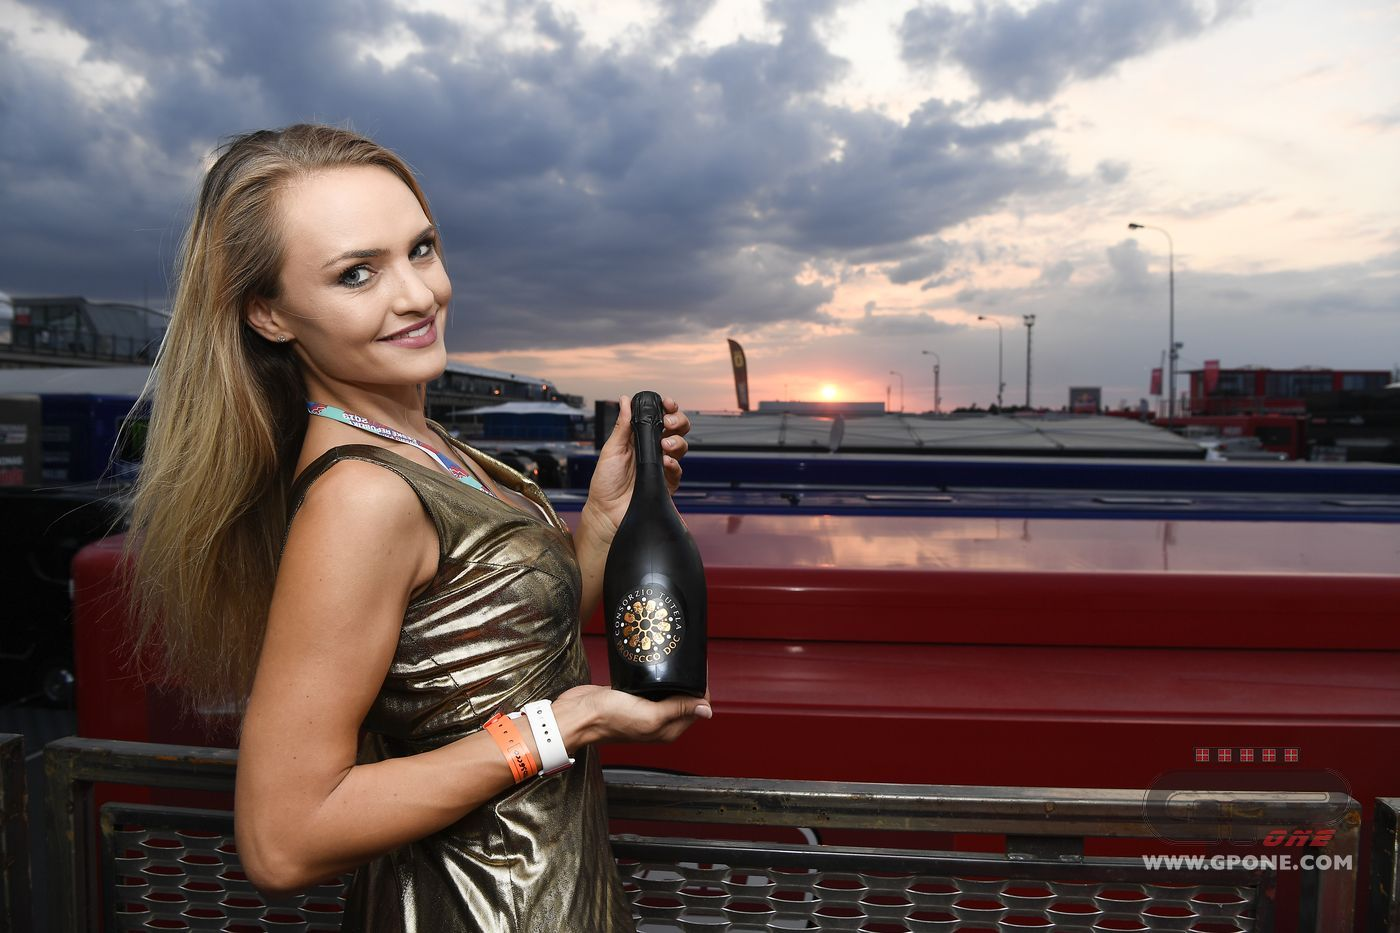 MotoGP, 'Master of Hospitality' kicks off at Brno with Prosecco Doc